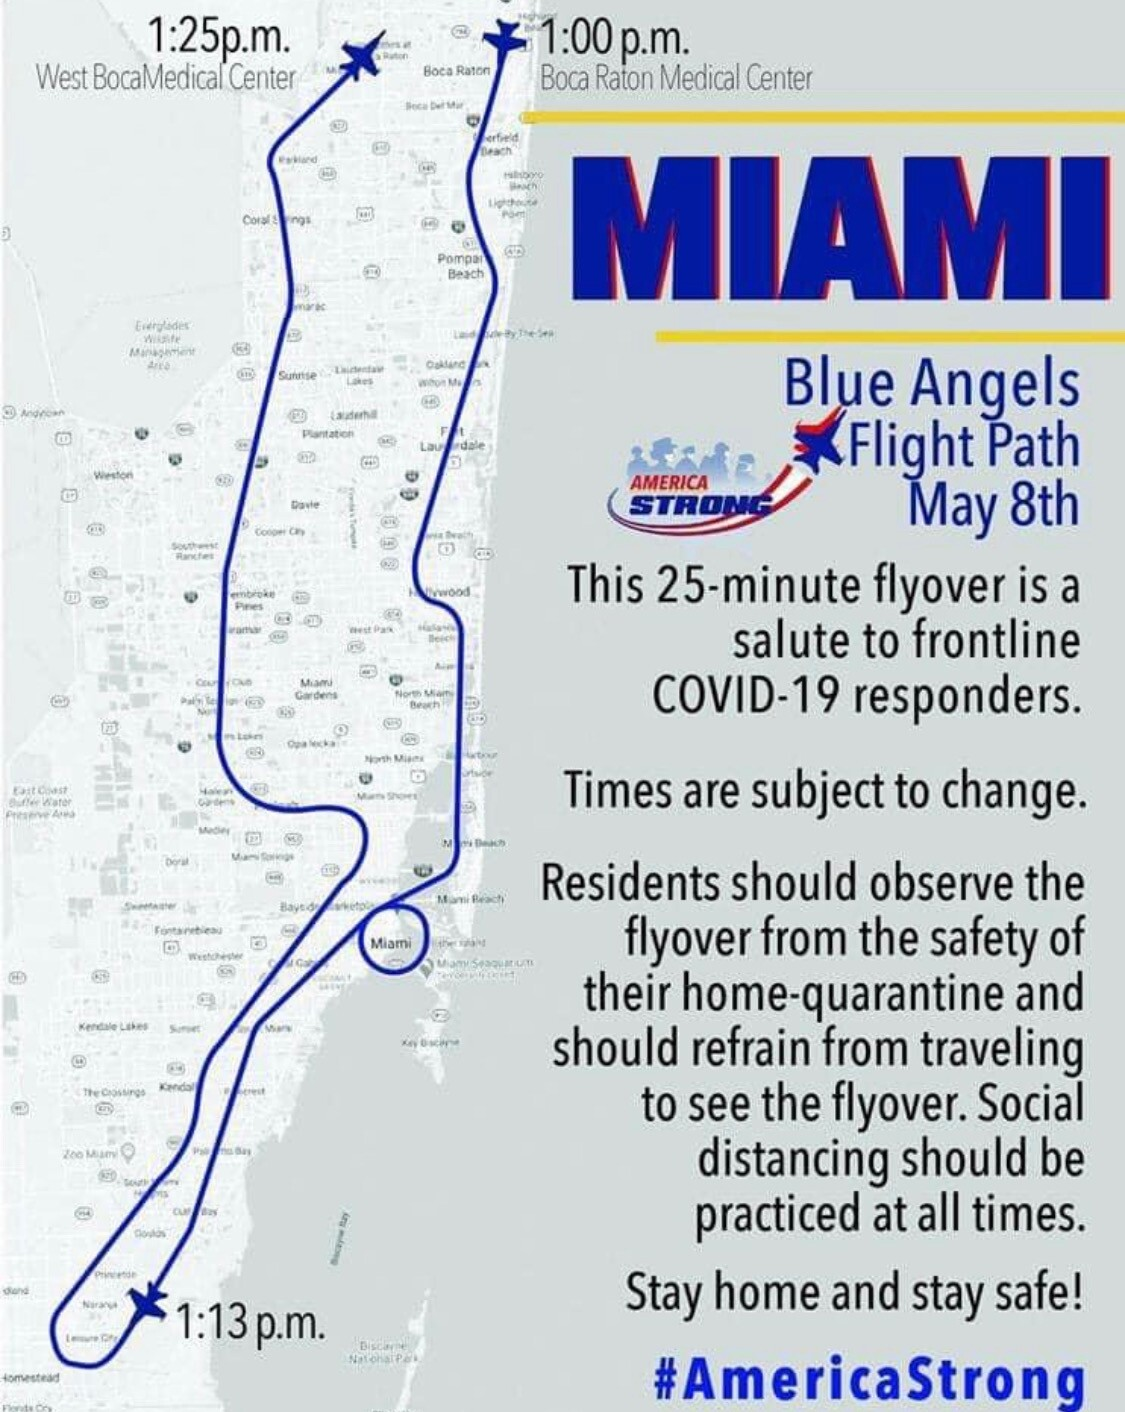 The flight path of the Blue Angels on Friday, May 8 starts and ends at hospitals in southern Palm Beach County.